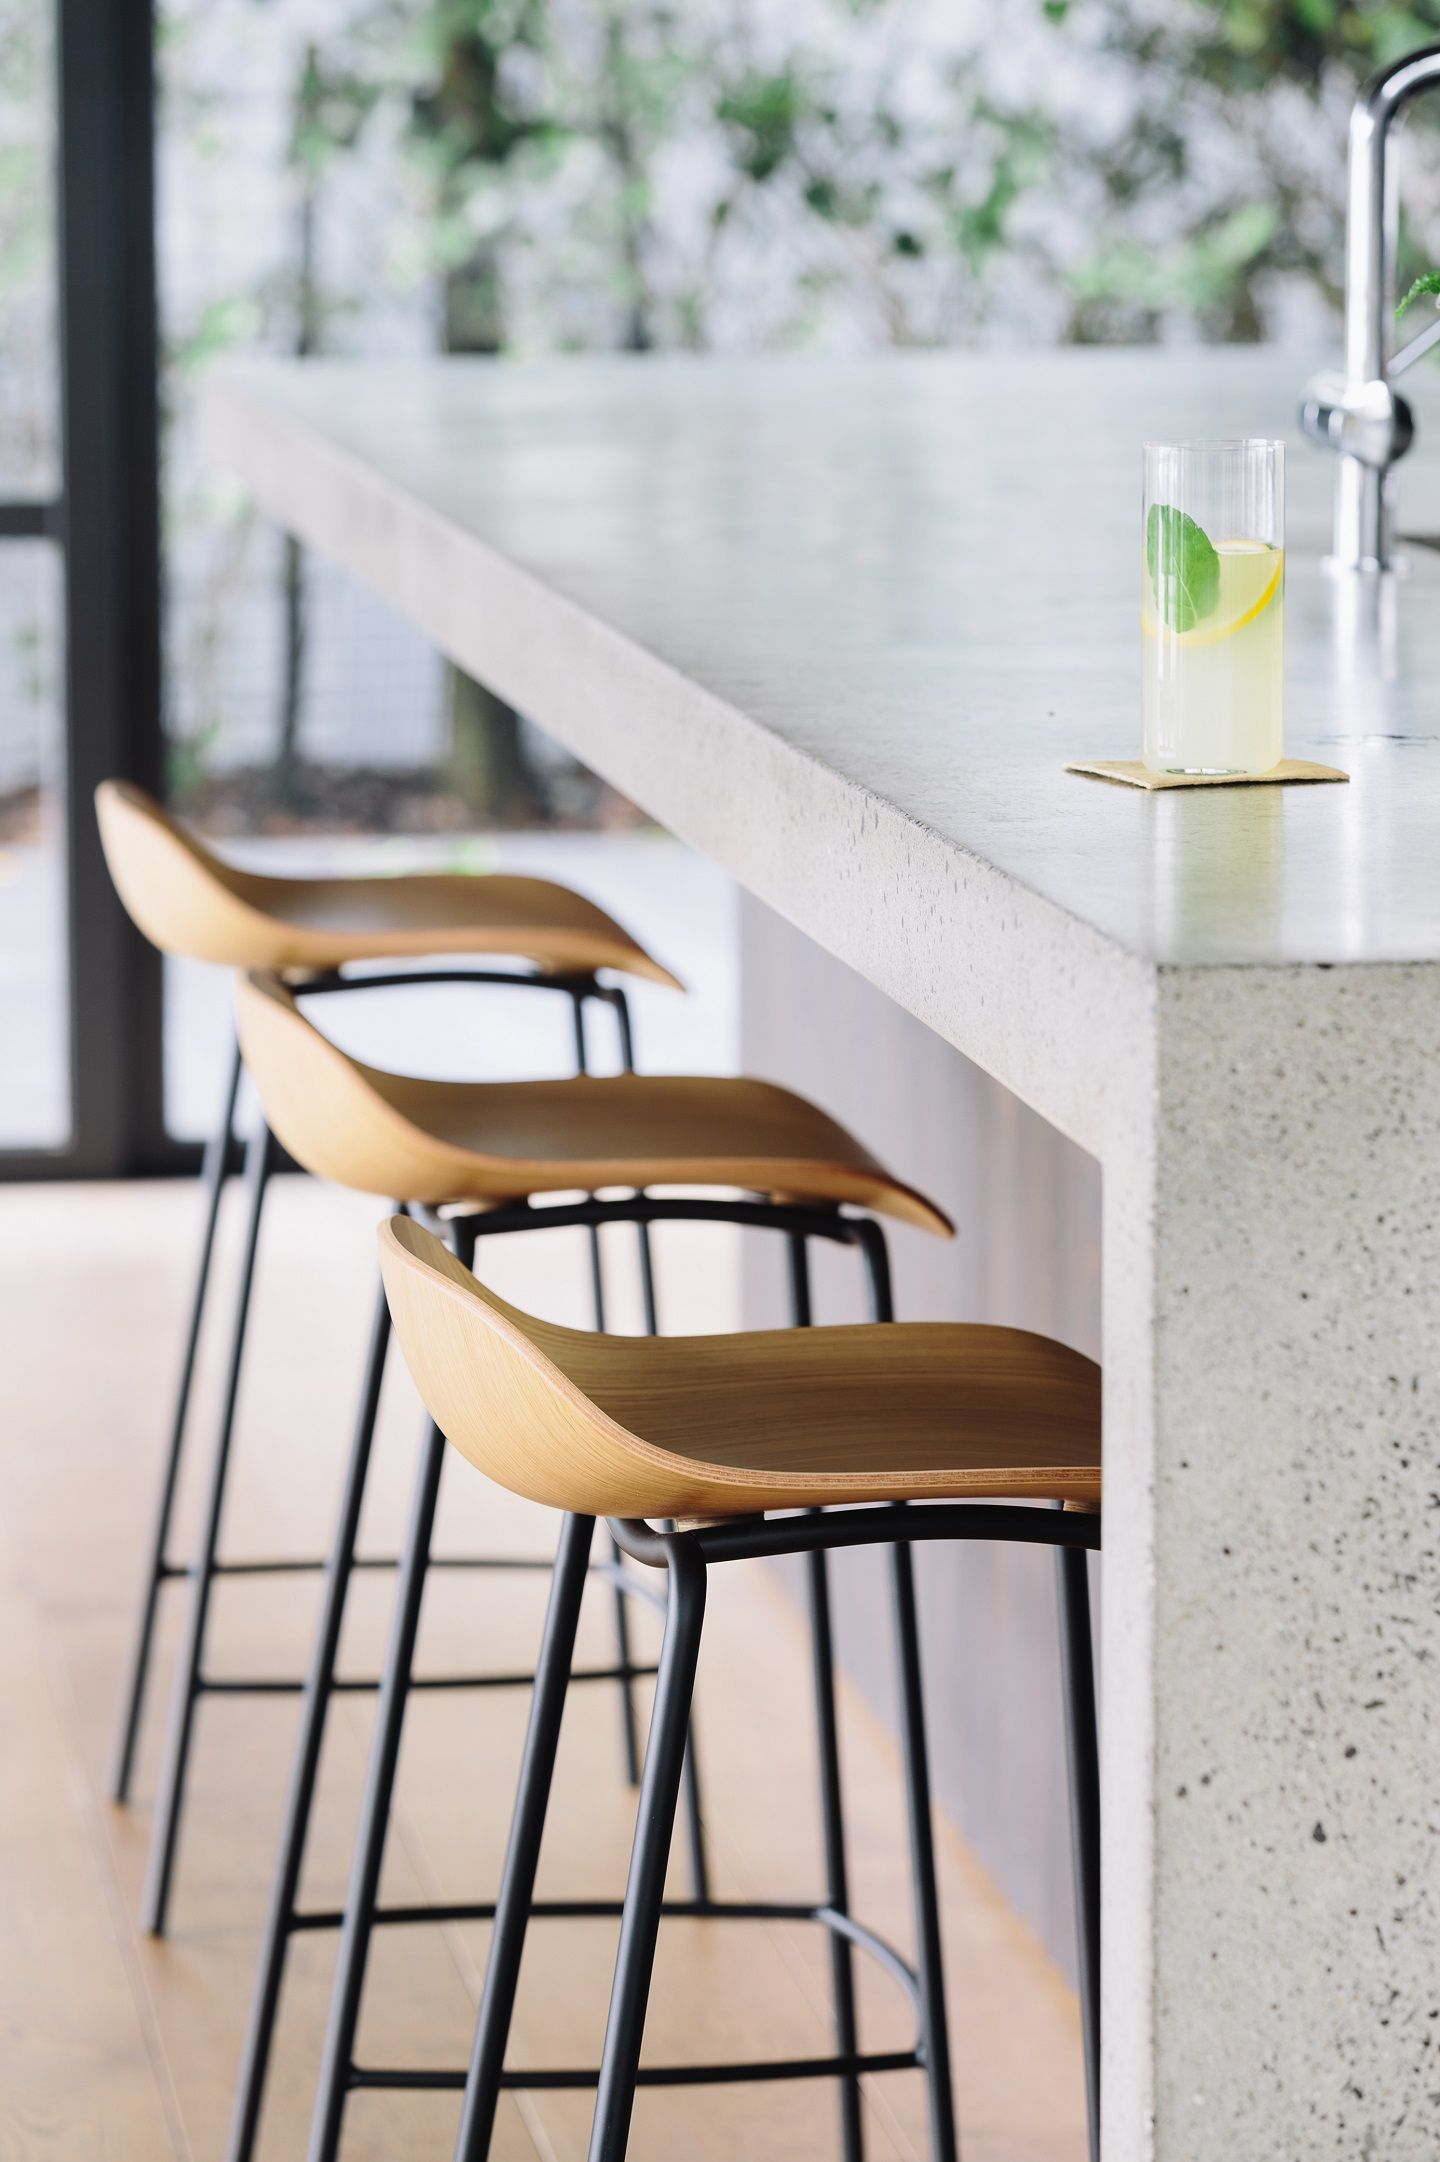 3d Stool Curvaceous For Comfort Nz Designed Furniture Modern